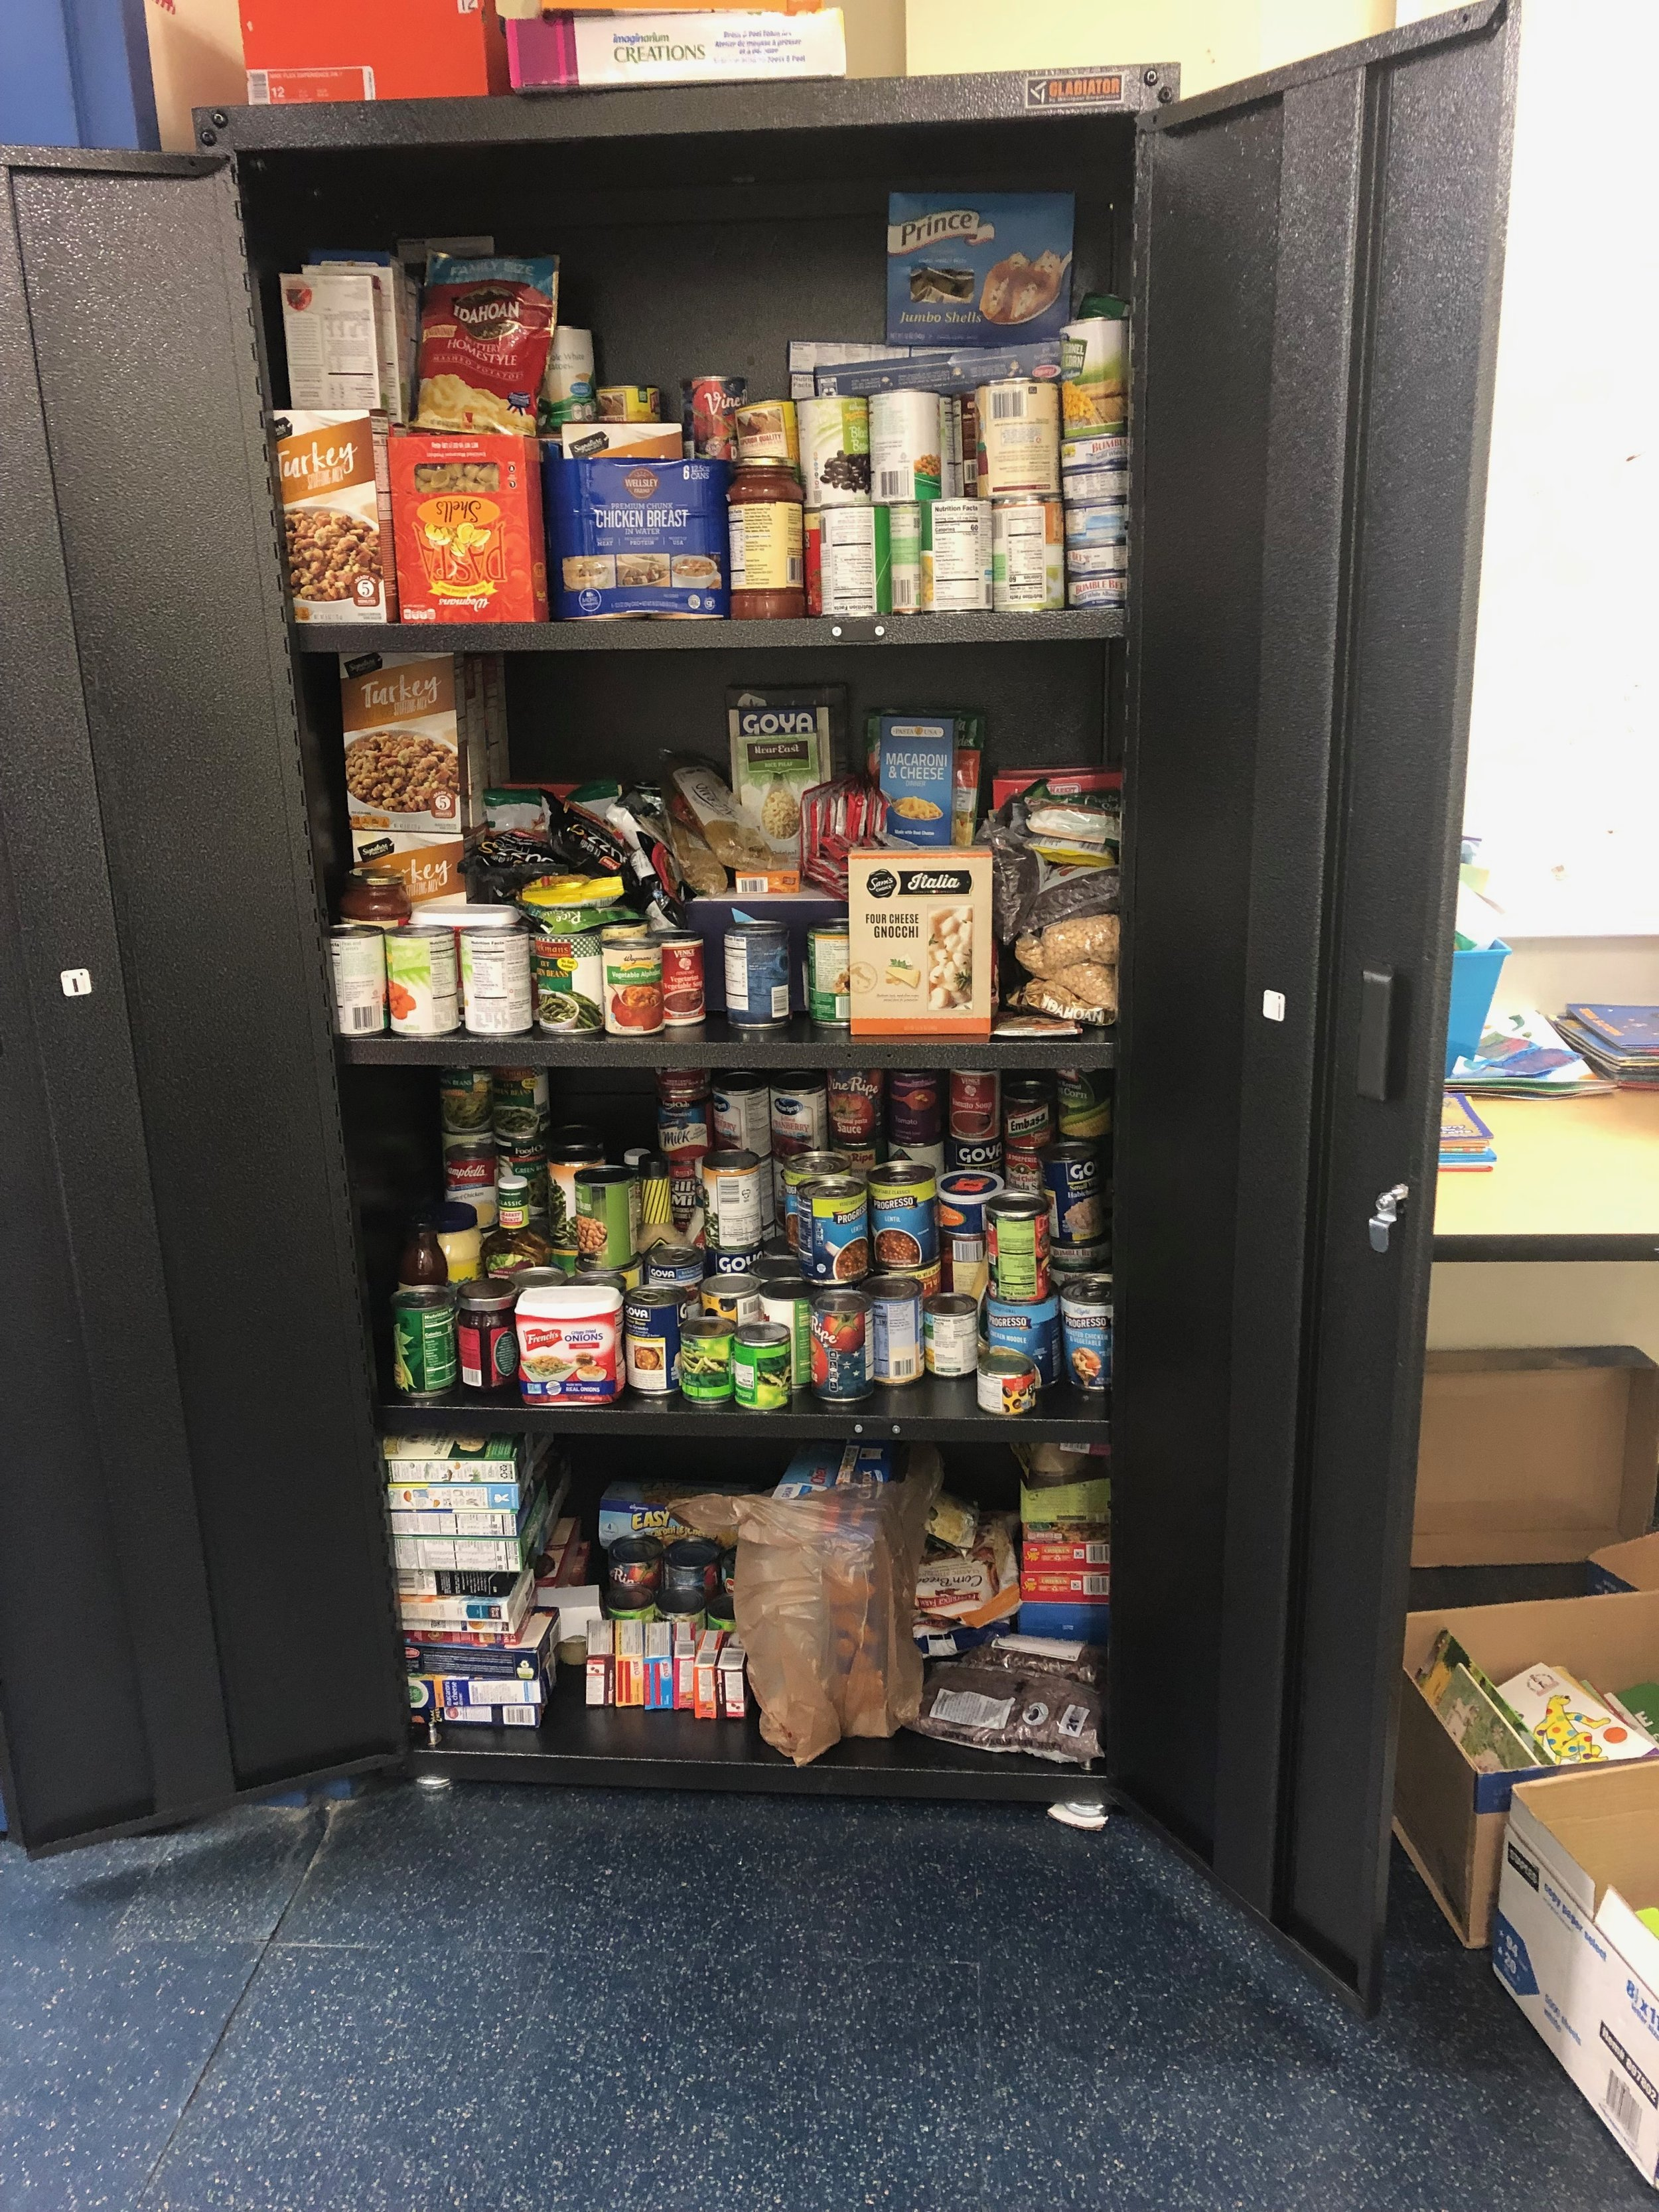 Ms. Molkentine's students built a food pantry in their school as part of their learning about hunger and about helping those in need.